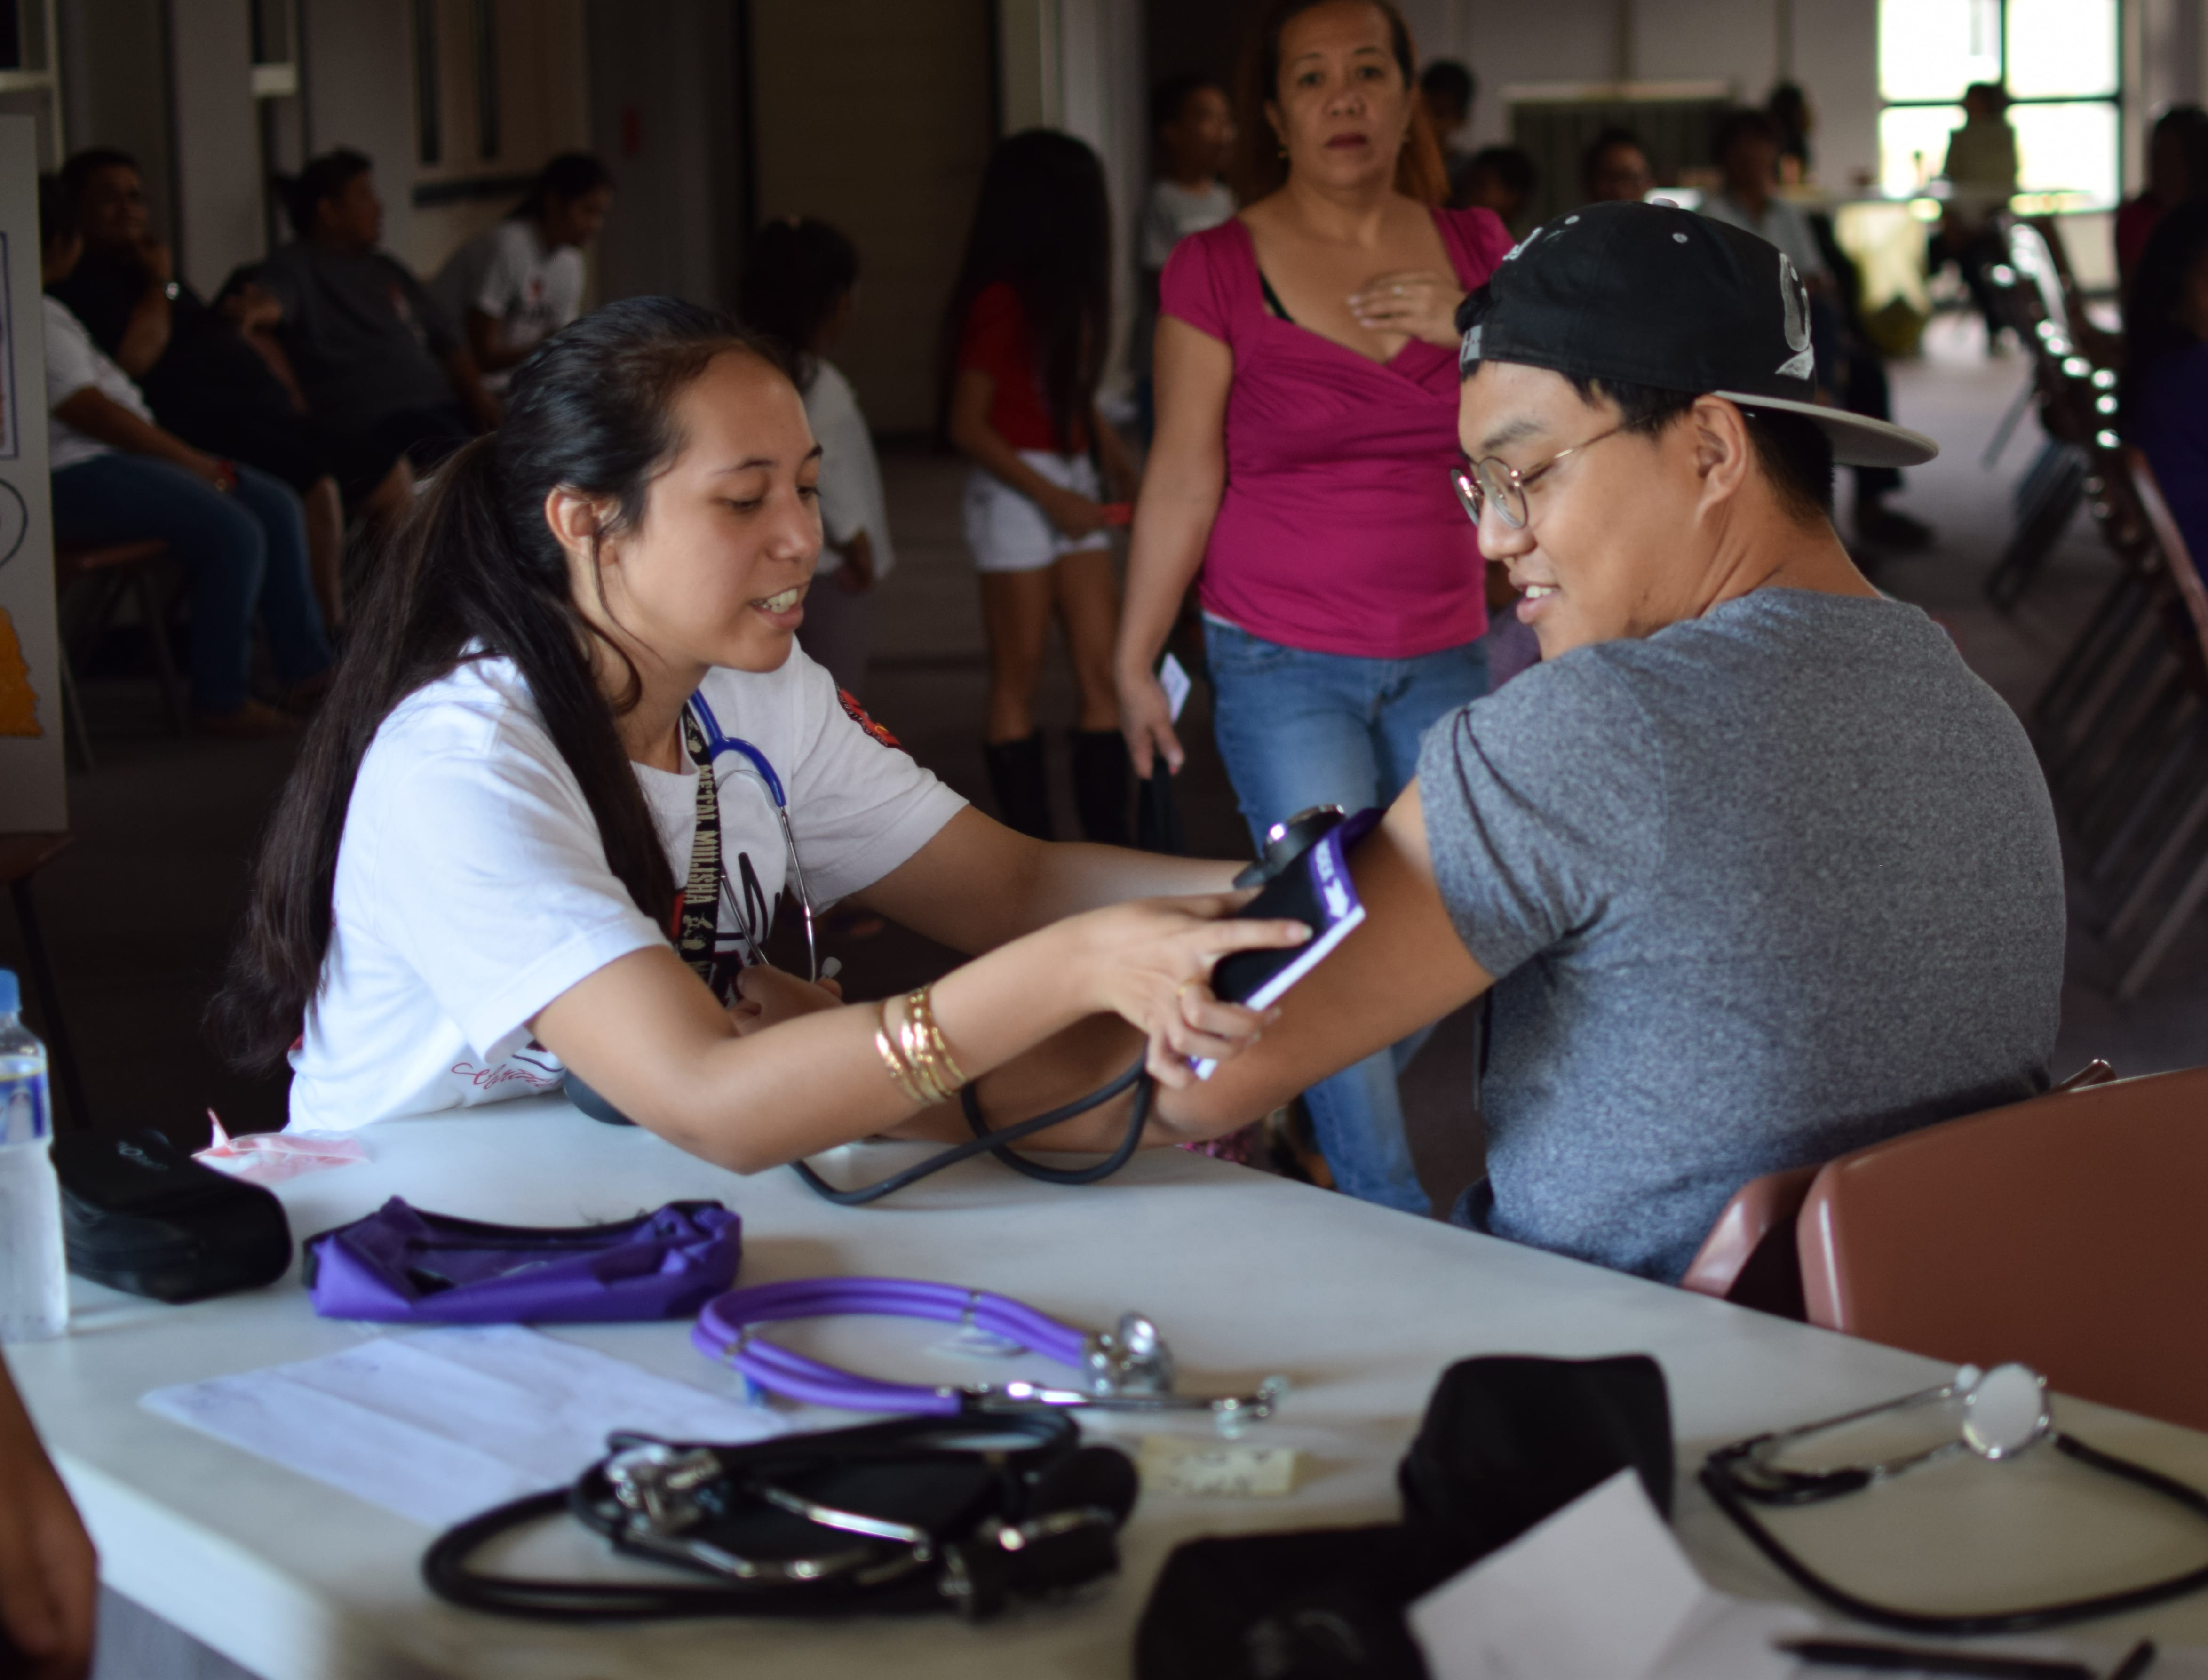 The Northern Marianas College Nursing Club is reminding community members about its Health Fair this Saturday, February 24, 2018 from 8:00am to 12:00pm at the Multi-Purpose Center in Susupe.